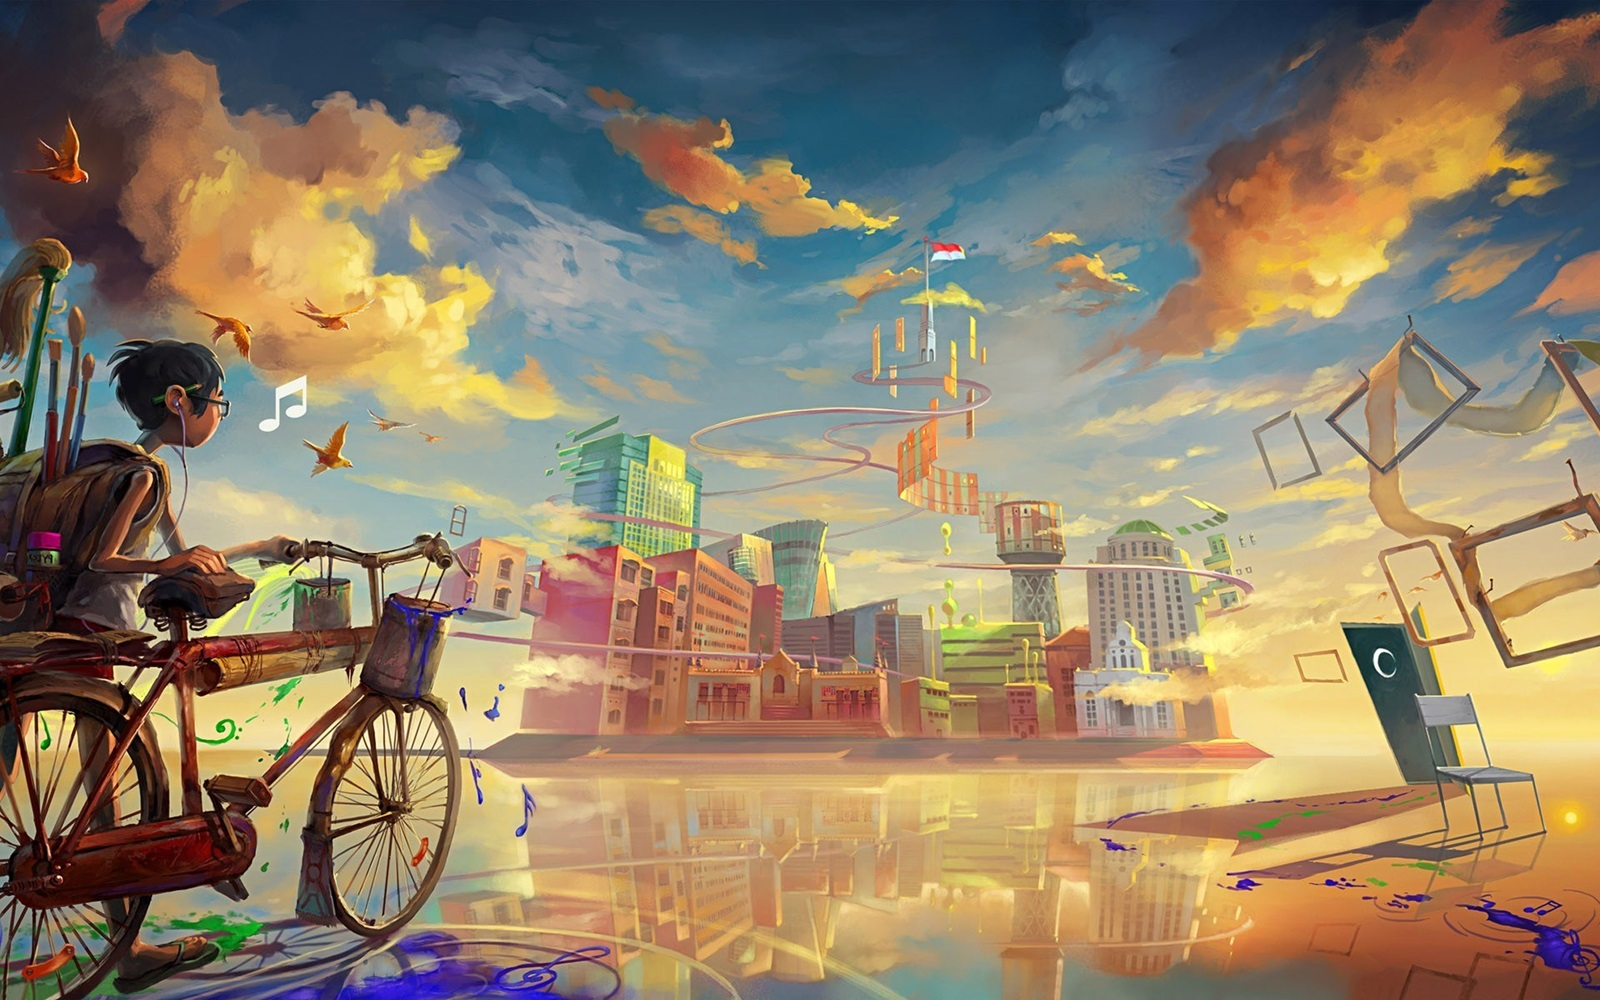 First Day School Going Drawing Art Hd Wallpaper wallpaperspickcom 1600x1000